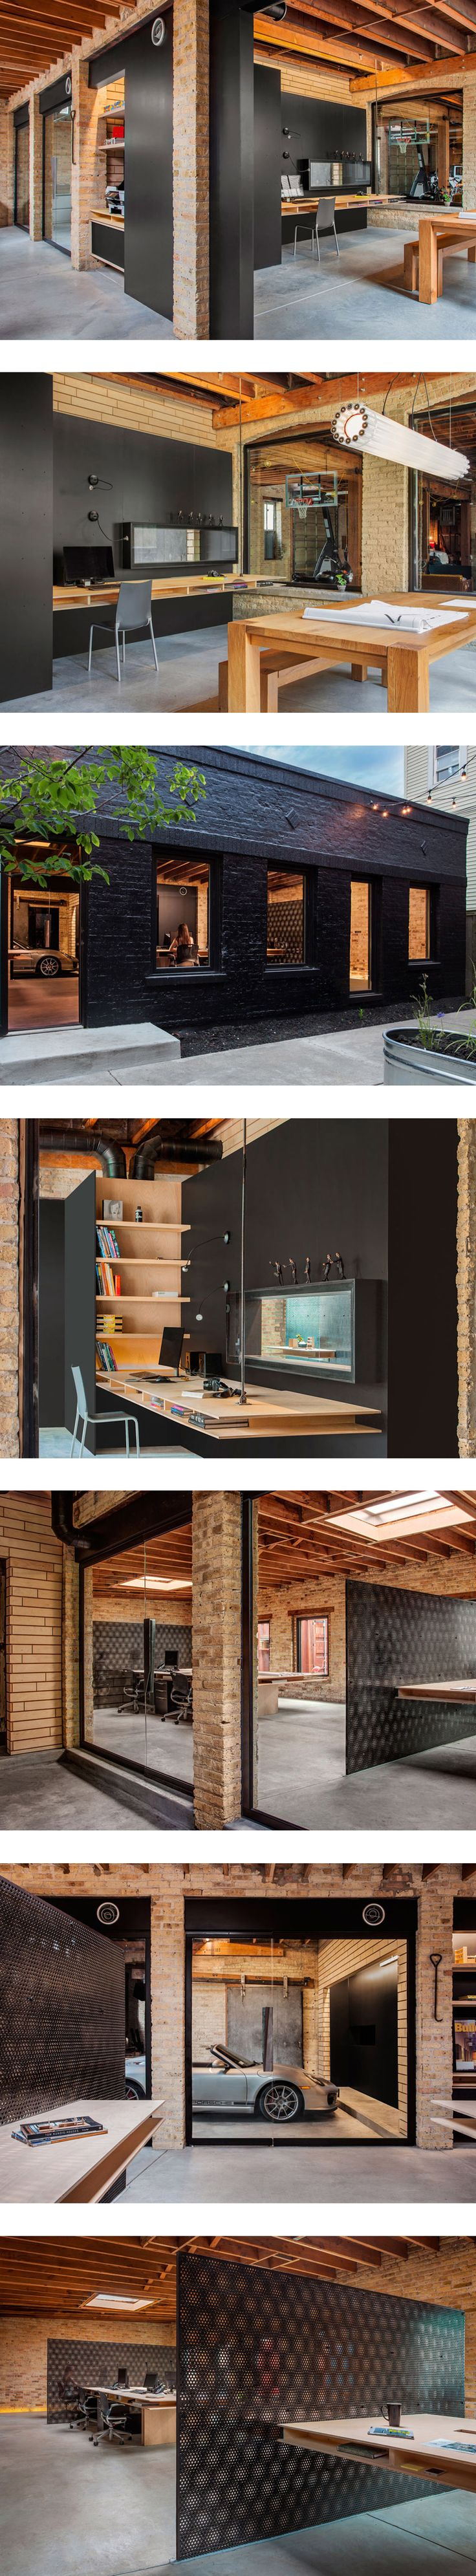 #office #wood #black #brick #interior